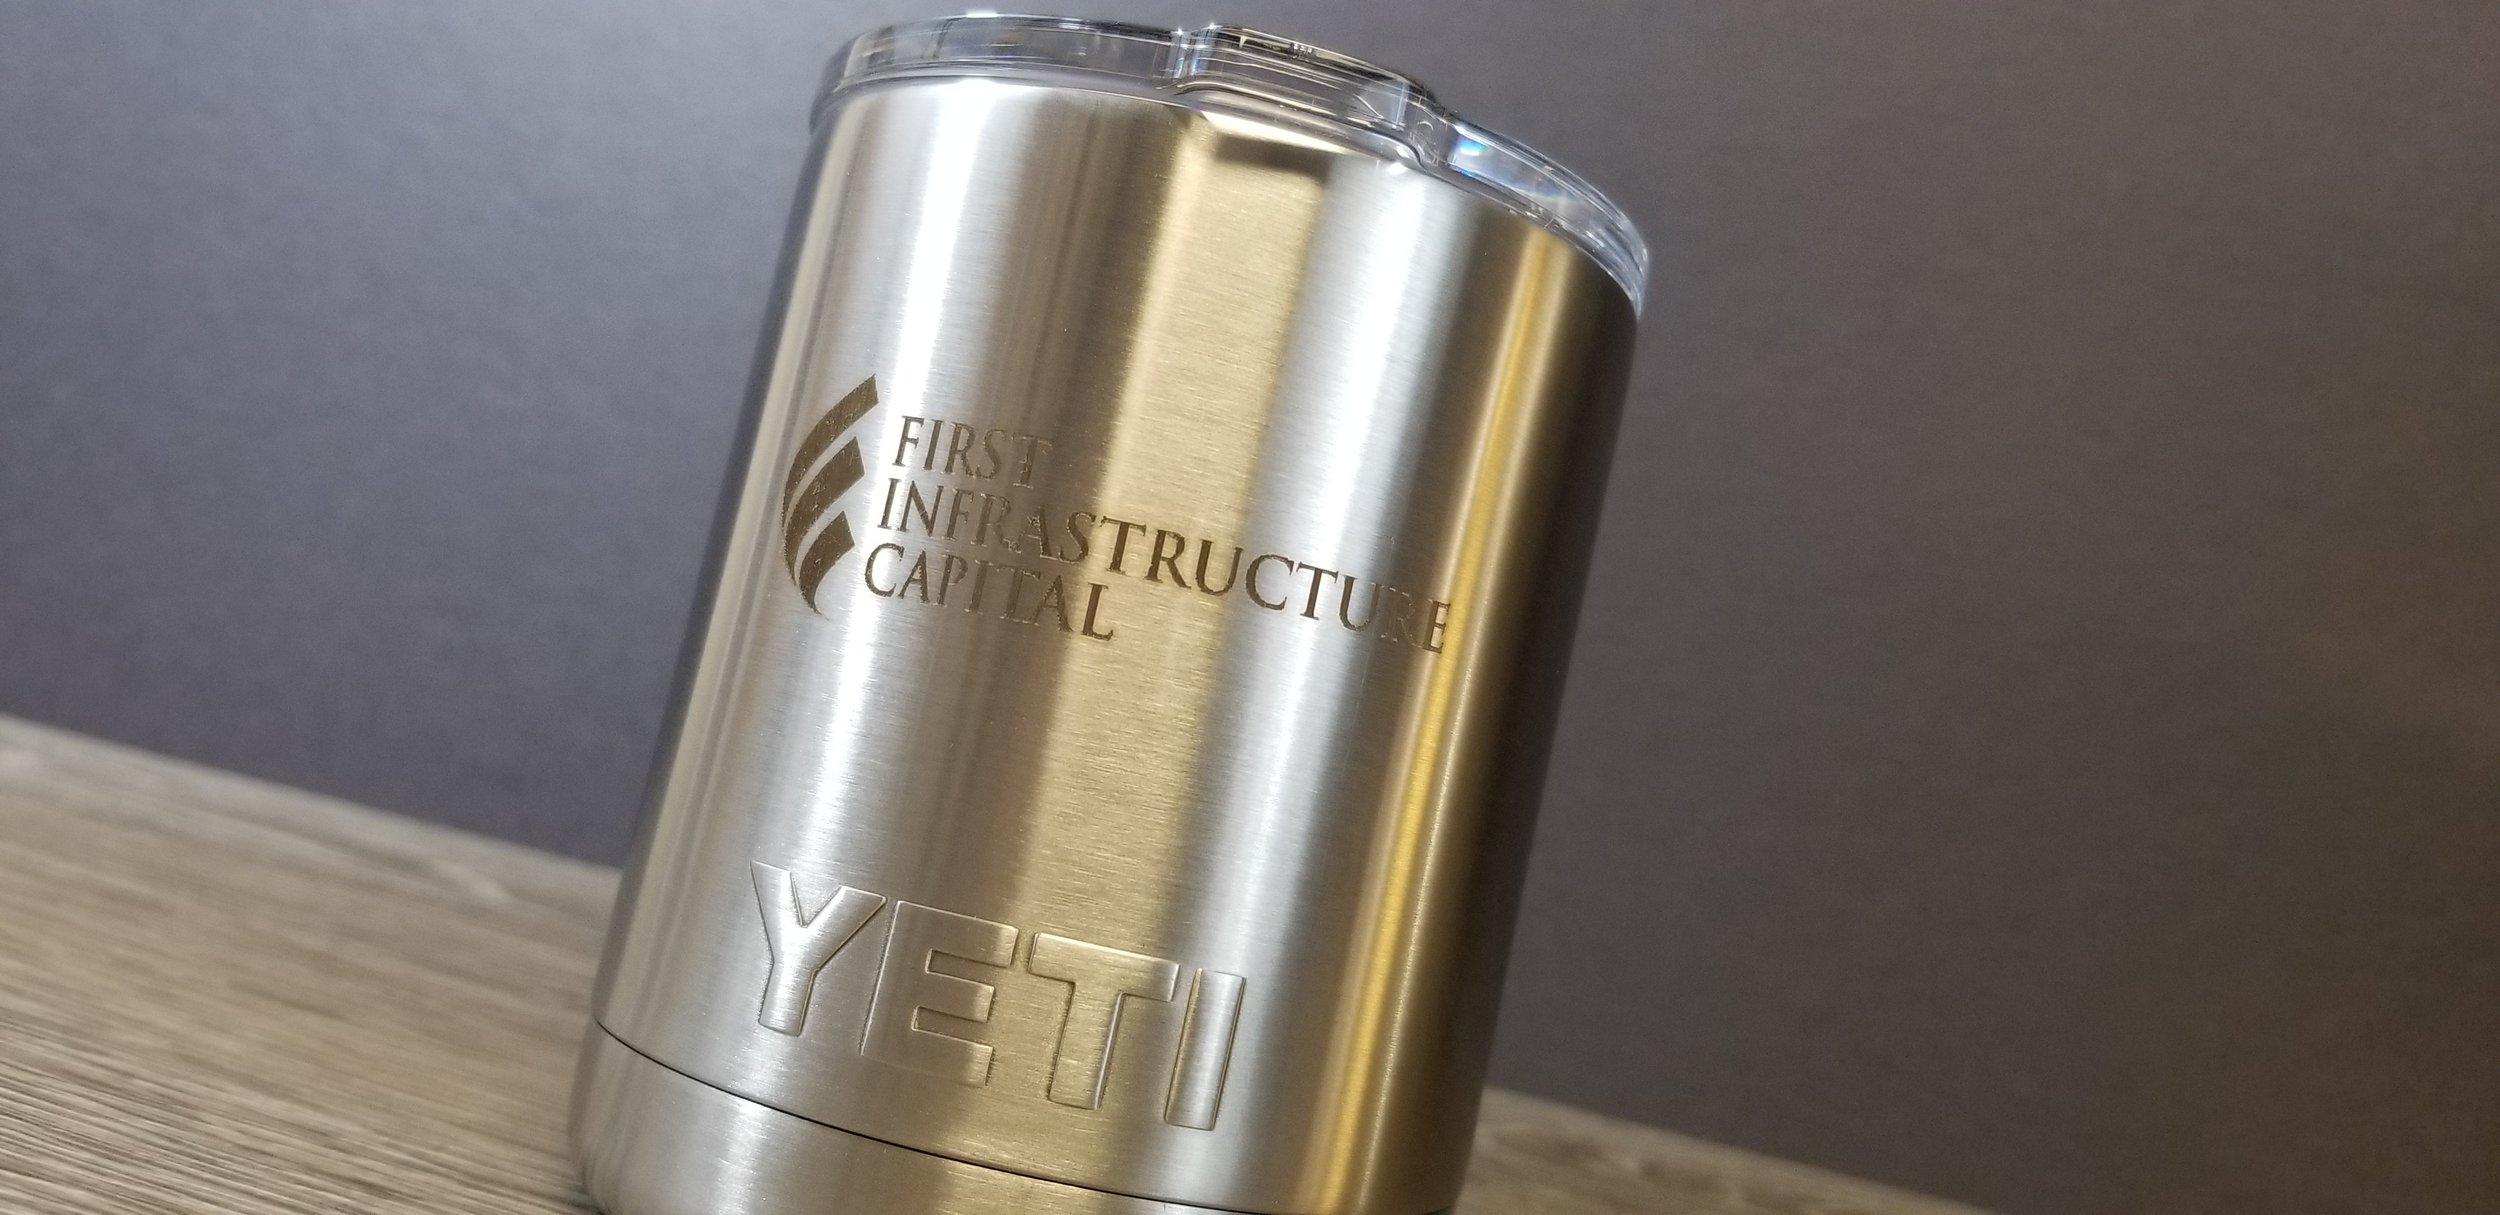 Custom Branded Yeti Tumblers - Custom Printed Yeti Tumblers - Logo Printed on Yeti Tumblers - Engrave It Houston